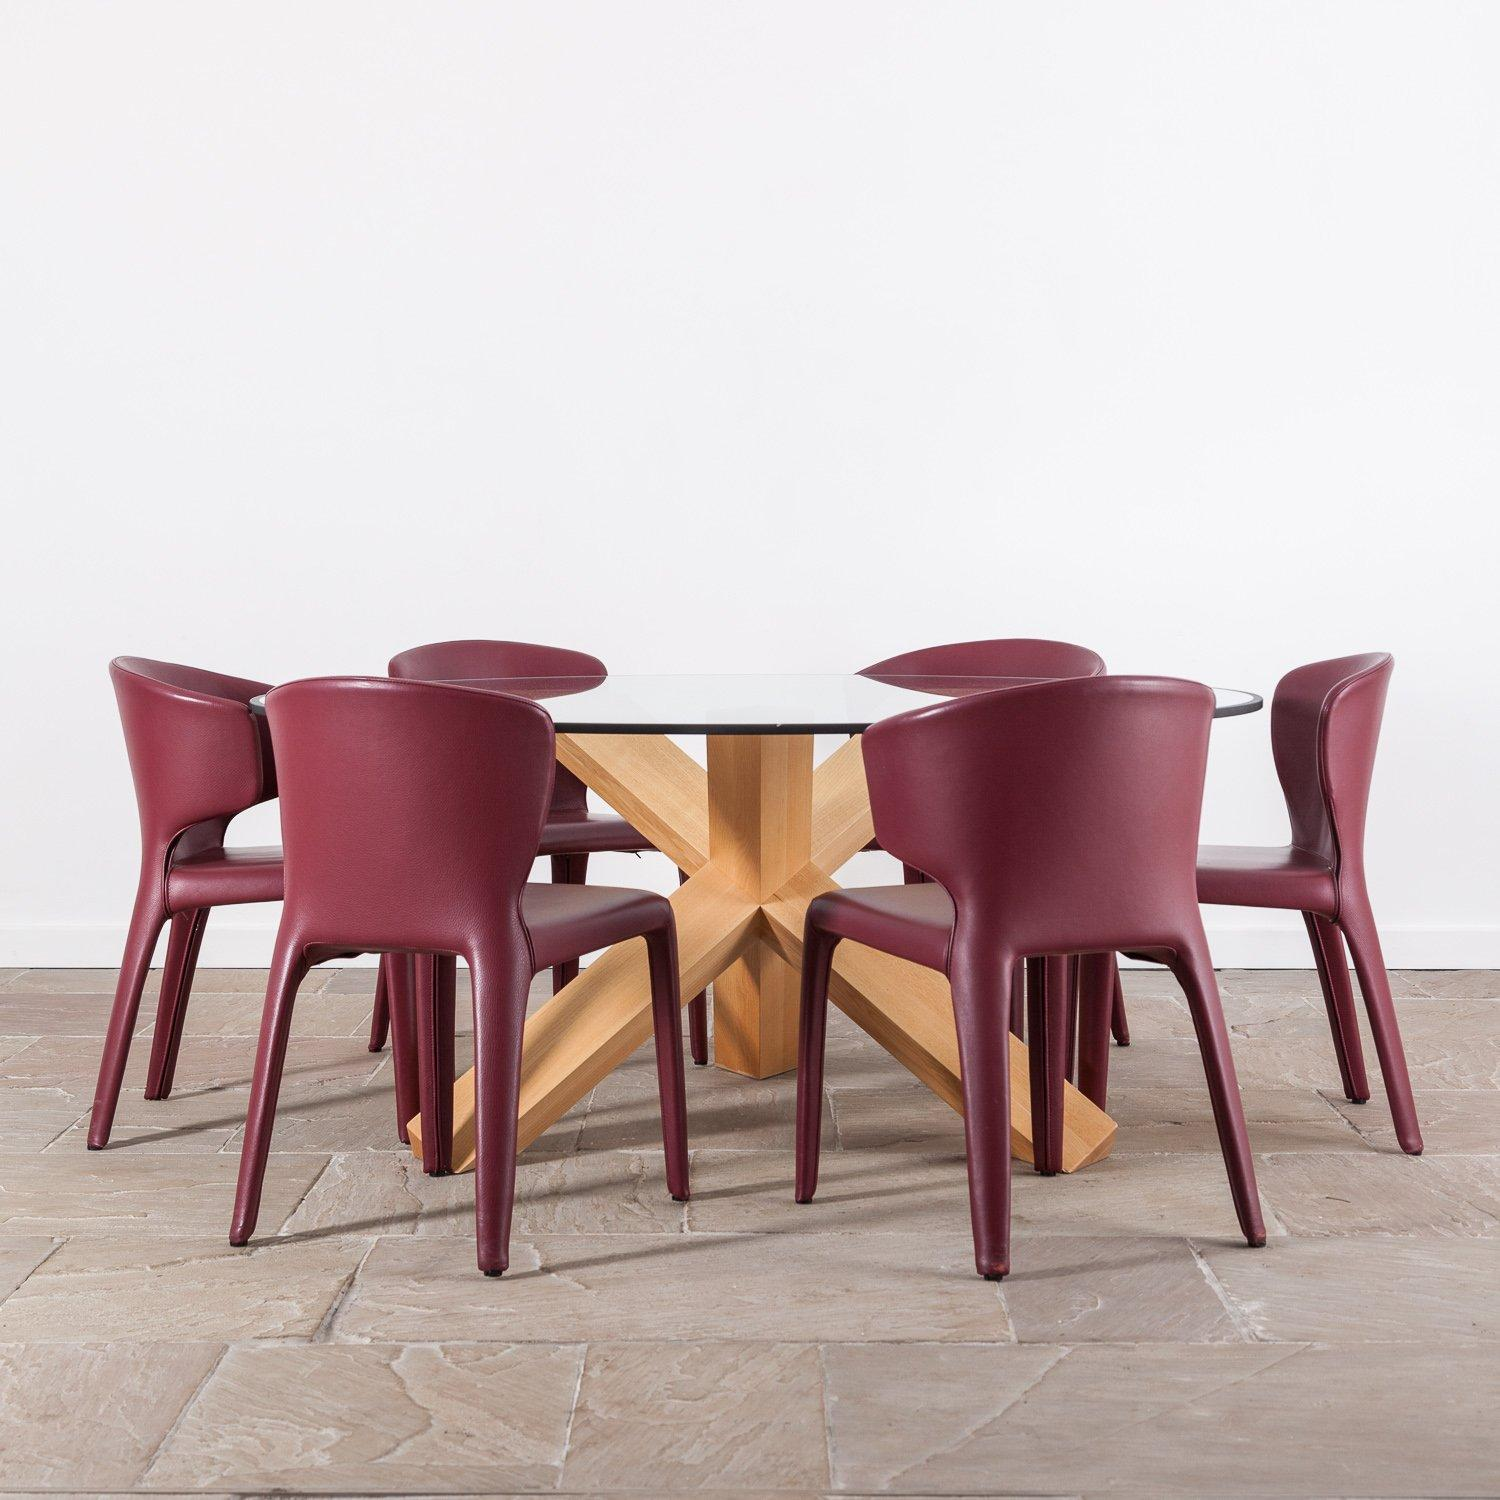 Leather Cassina Hola Chair designed by Hannes Wettstein 7